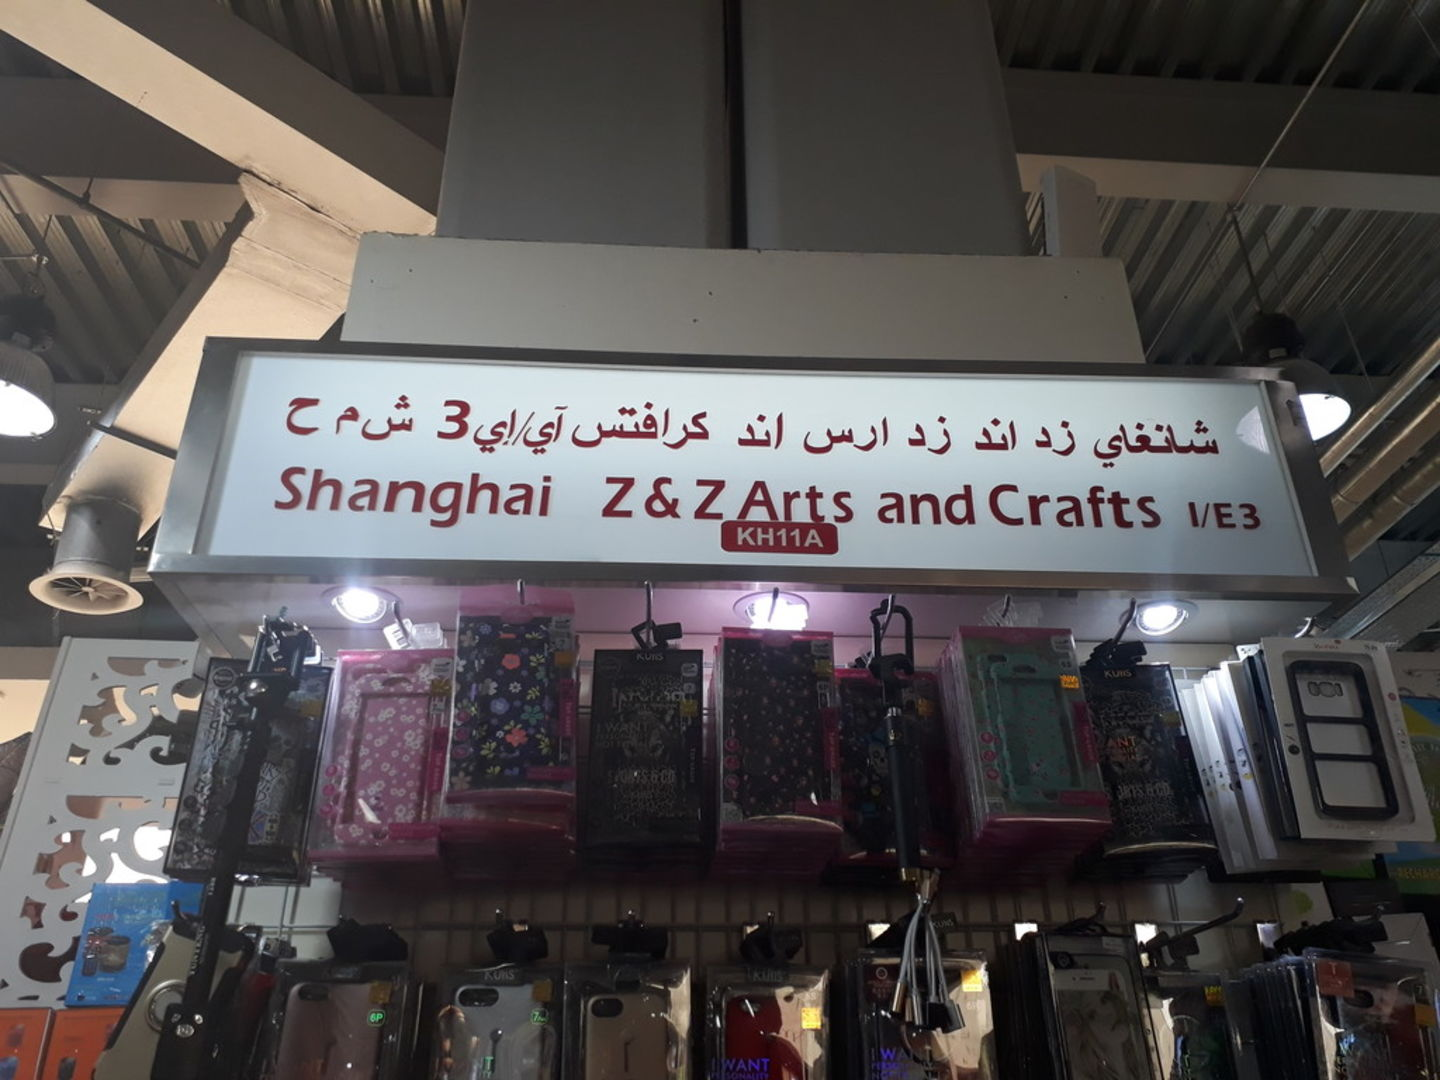 HiDubai-business-shanghai-z-z-arts-and-crafts-shopping-consumer-electronics-international-city-warsan-1-dubai-2